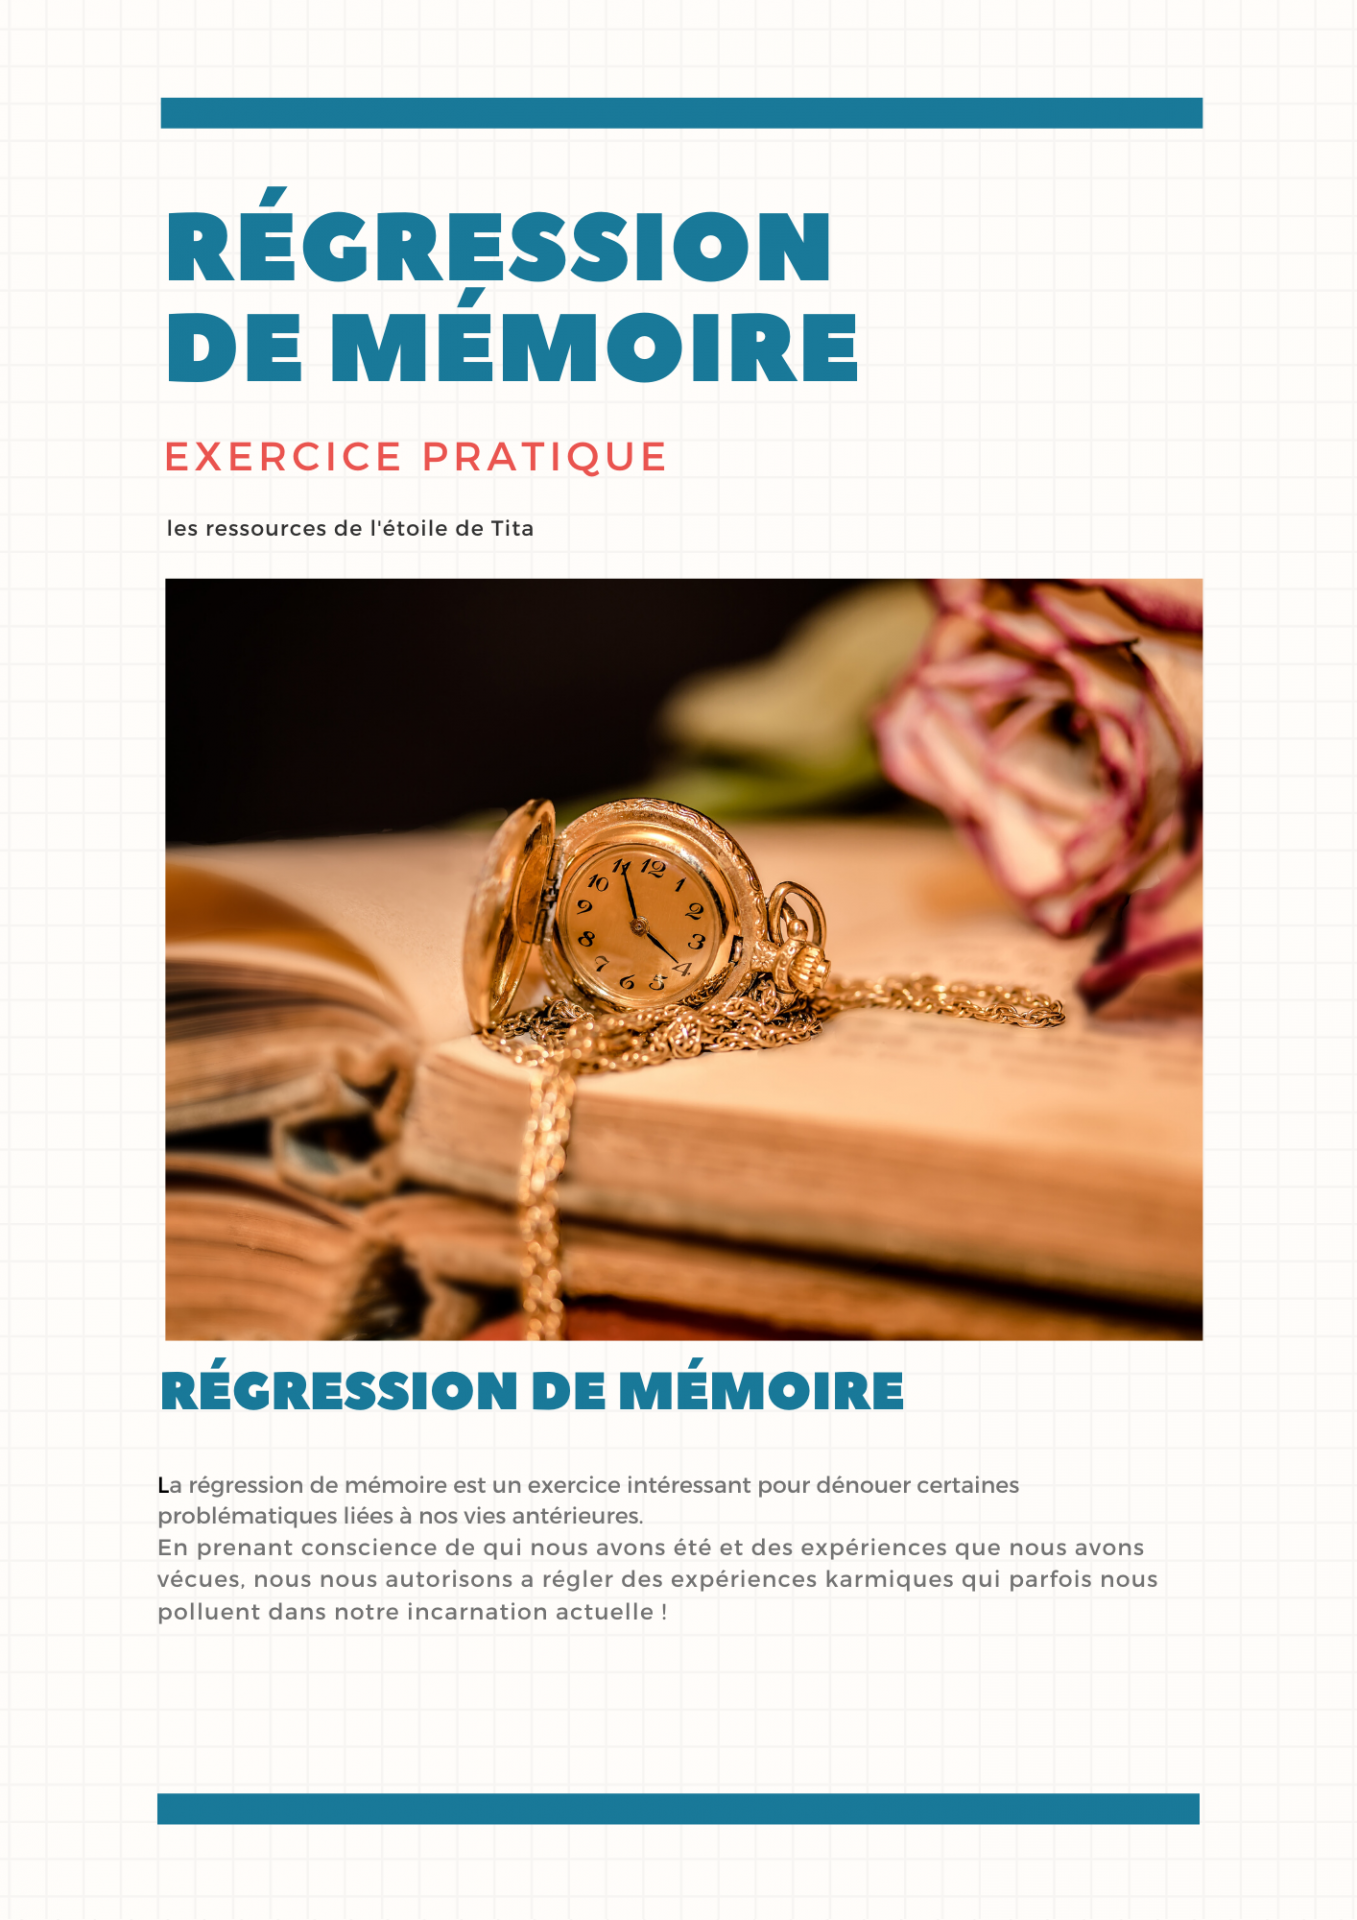 régression de mémoire